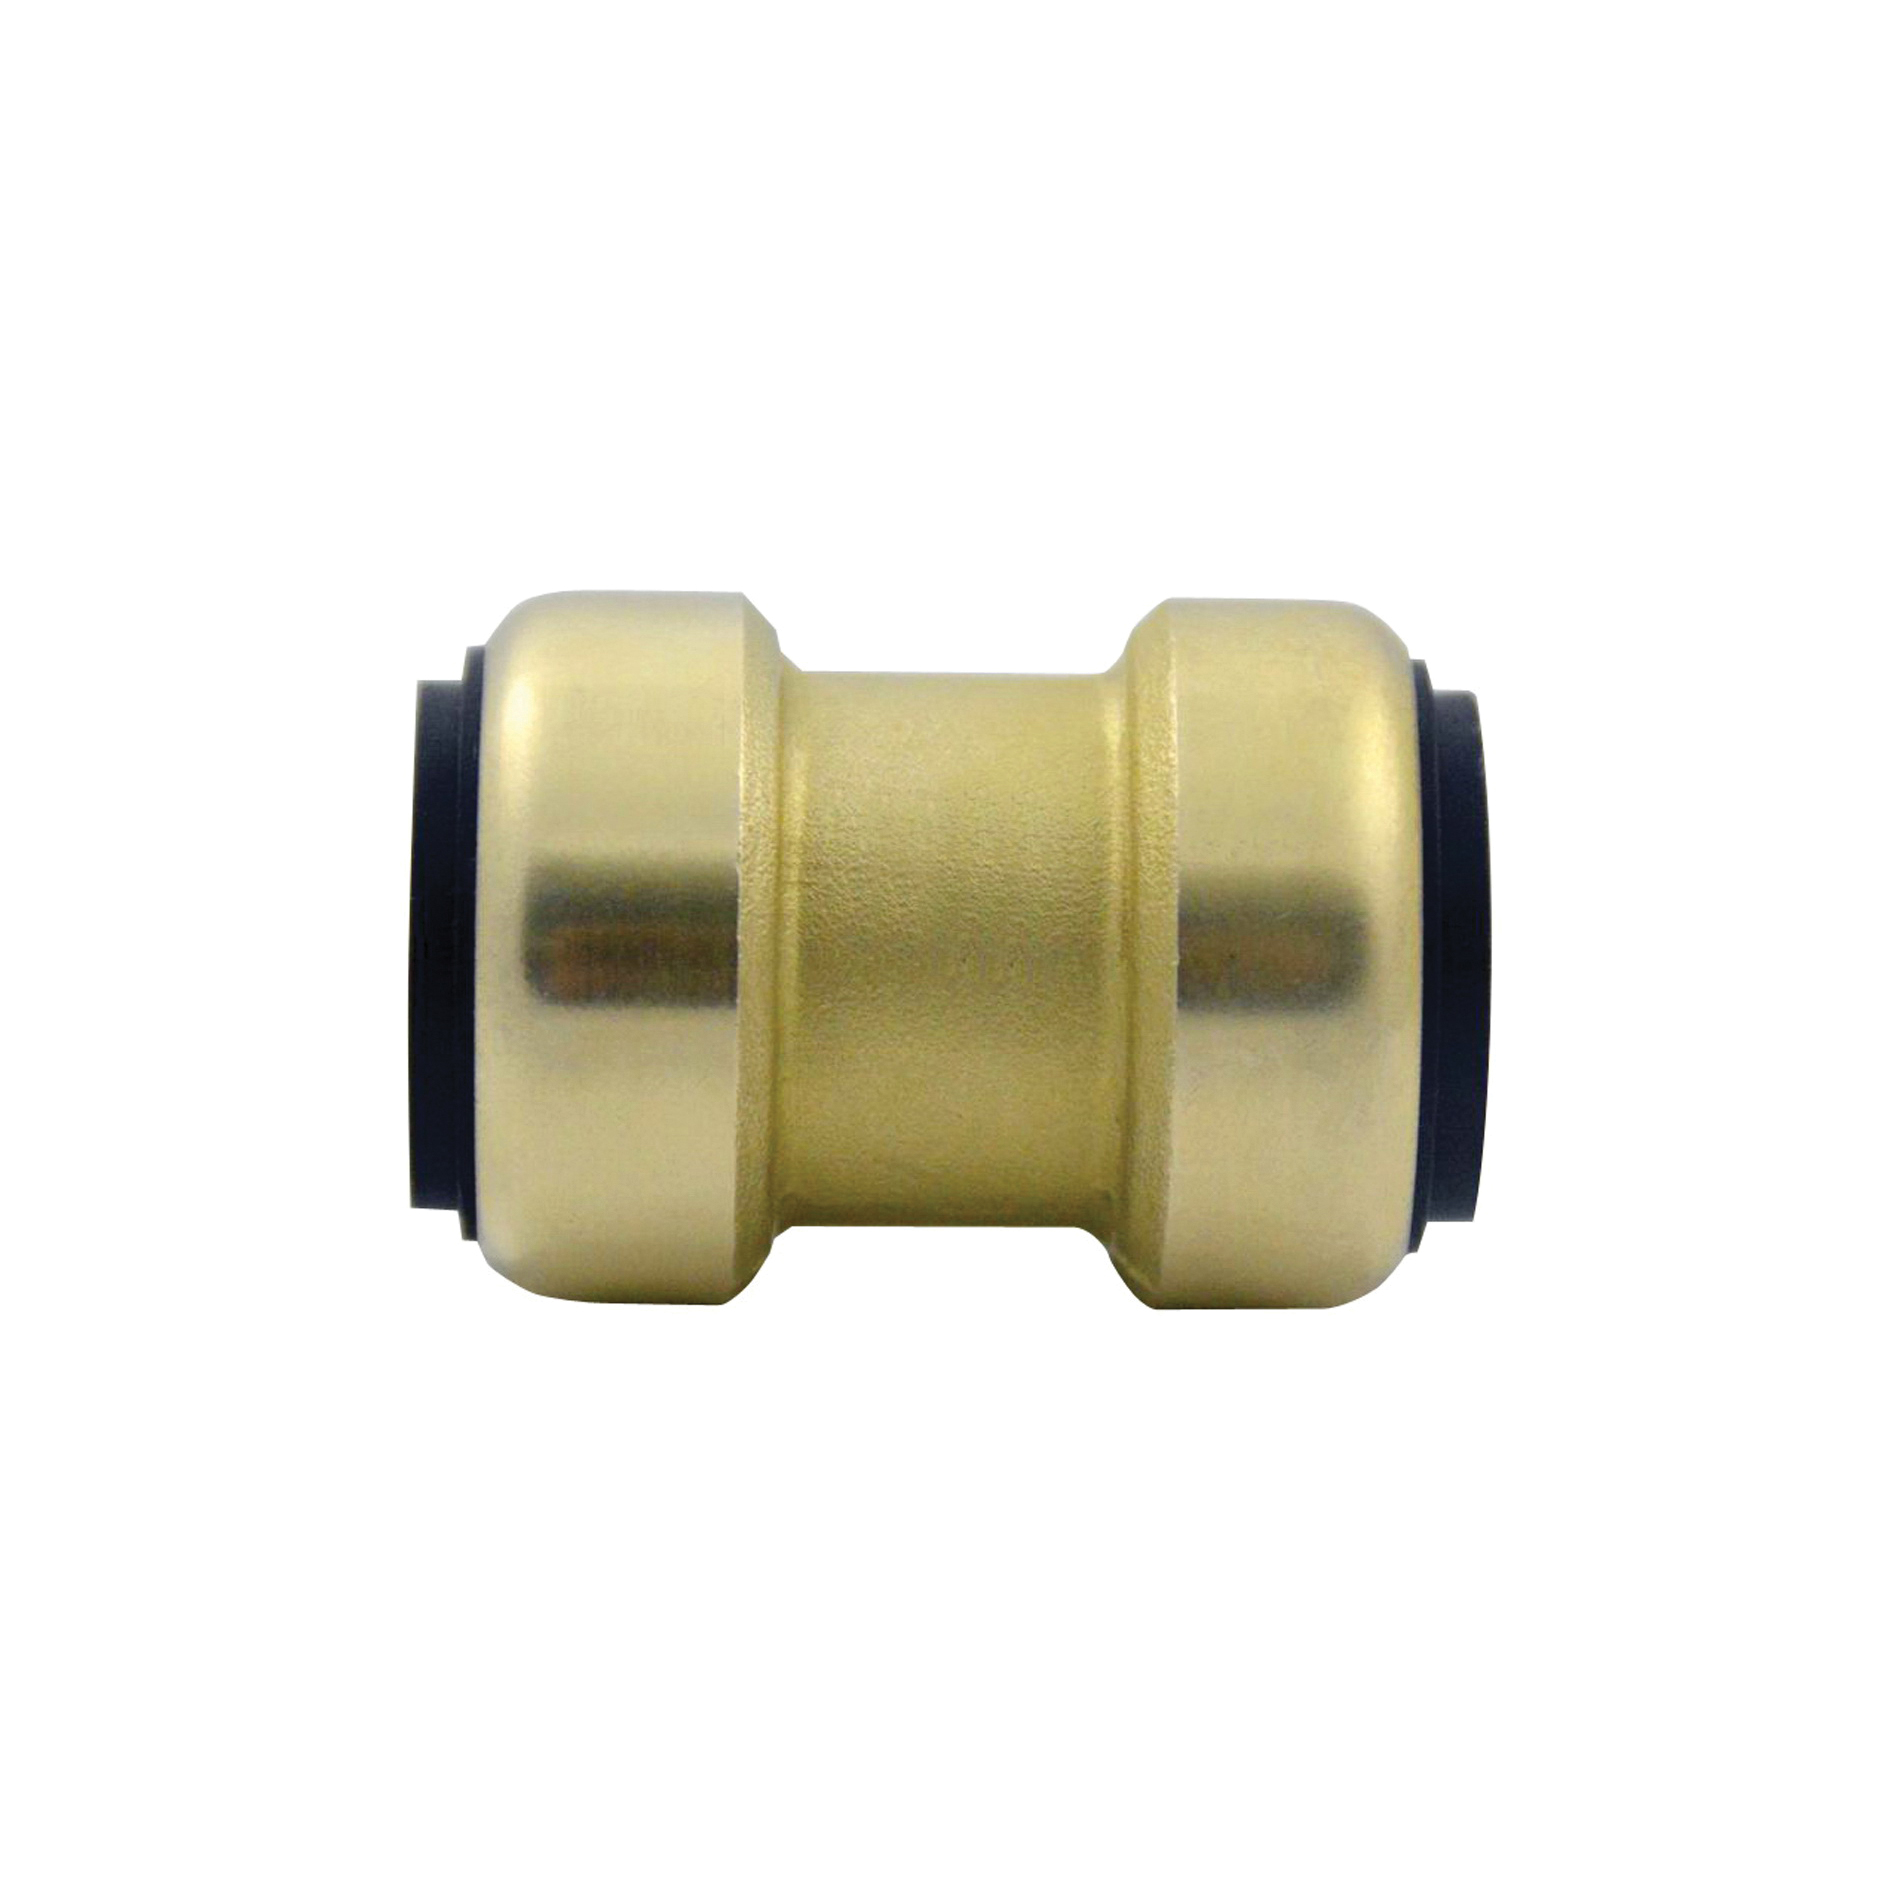 EPC TECTITE™ 10155456 200 Push Coupling, 1 in, C x C, Brass